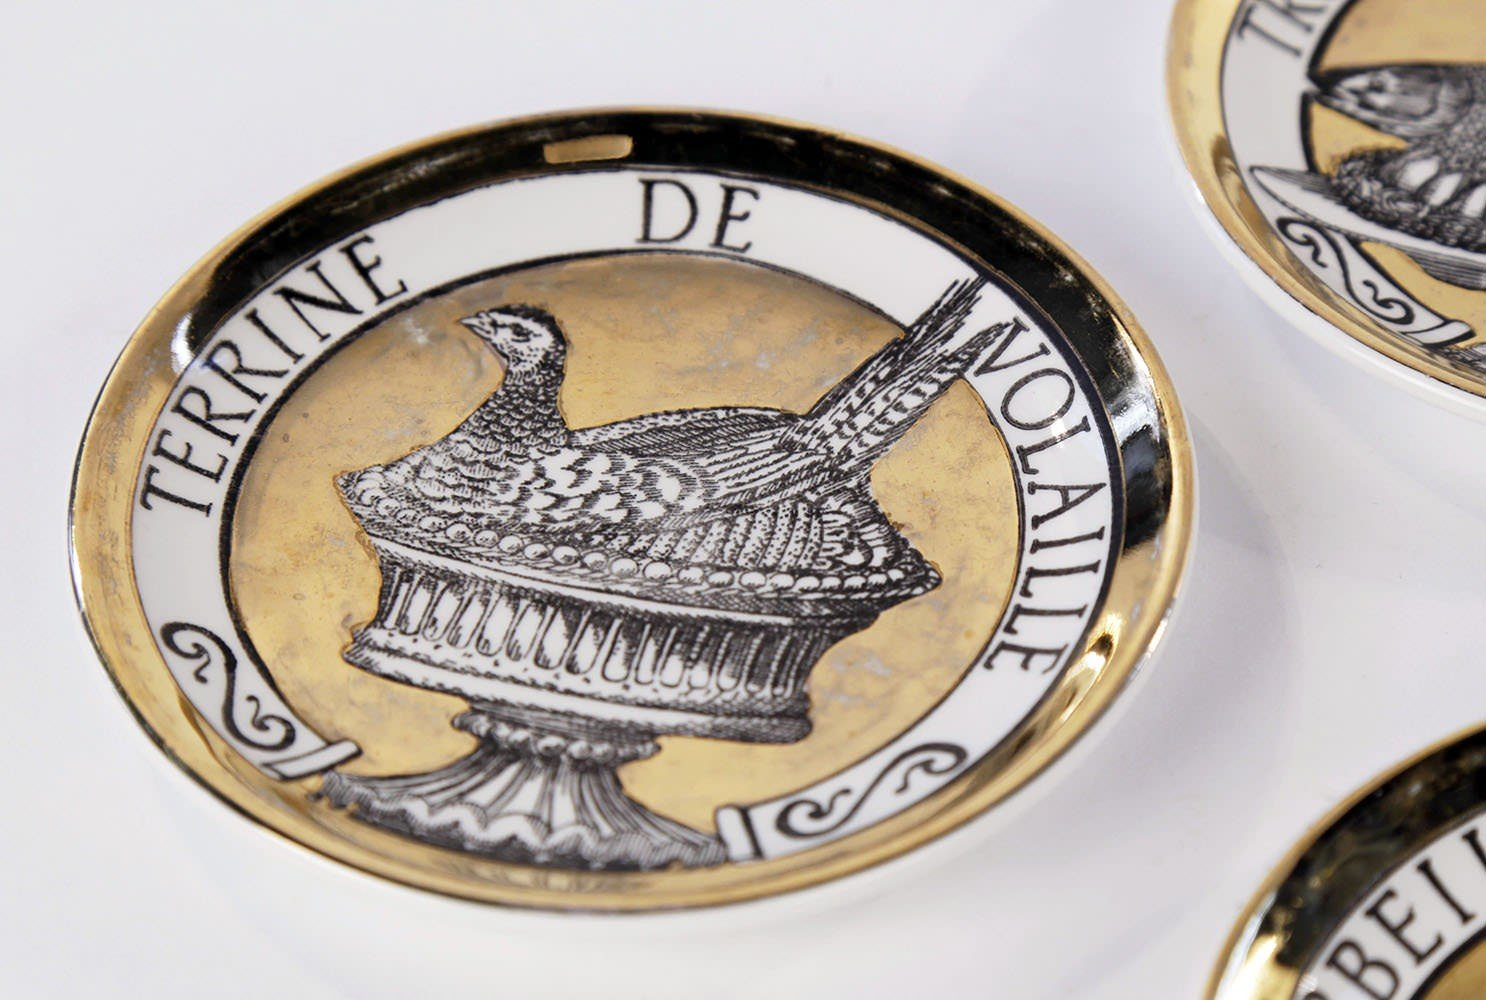 Set of Eight Fornasetti Coasters, Dinner At Eight, or Pranzo alle Otto